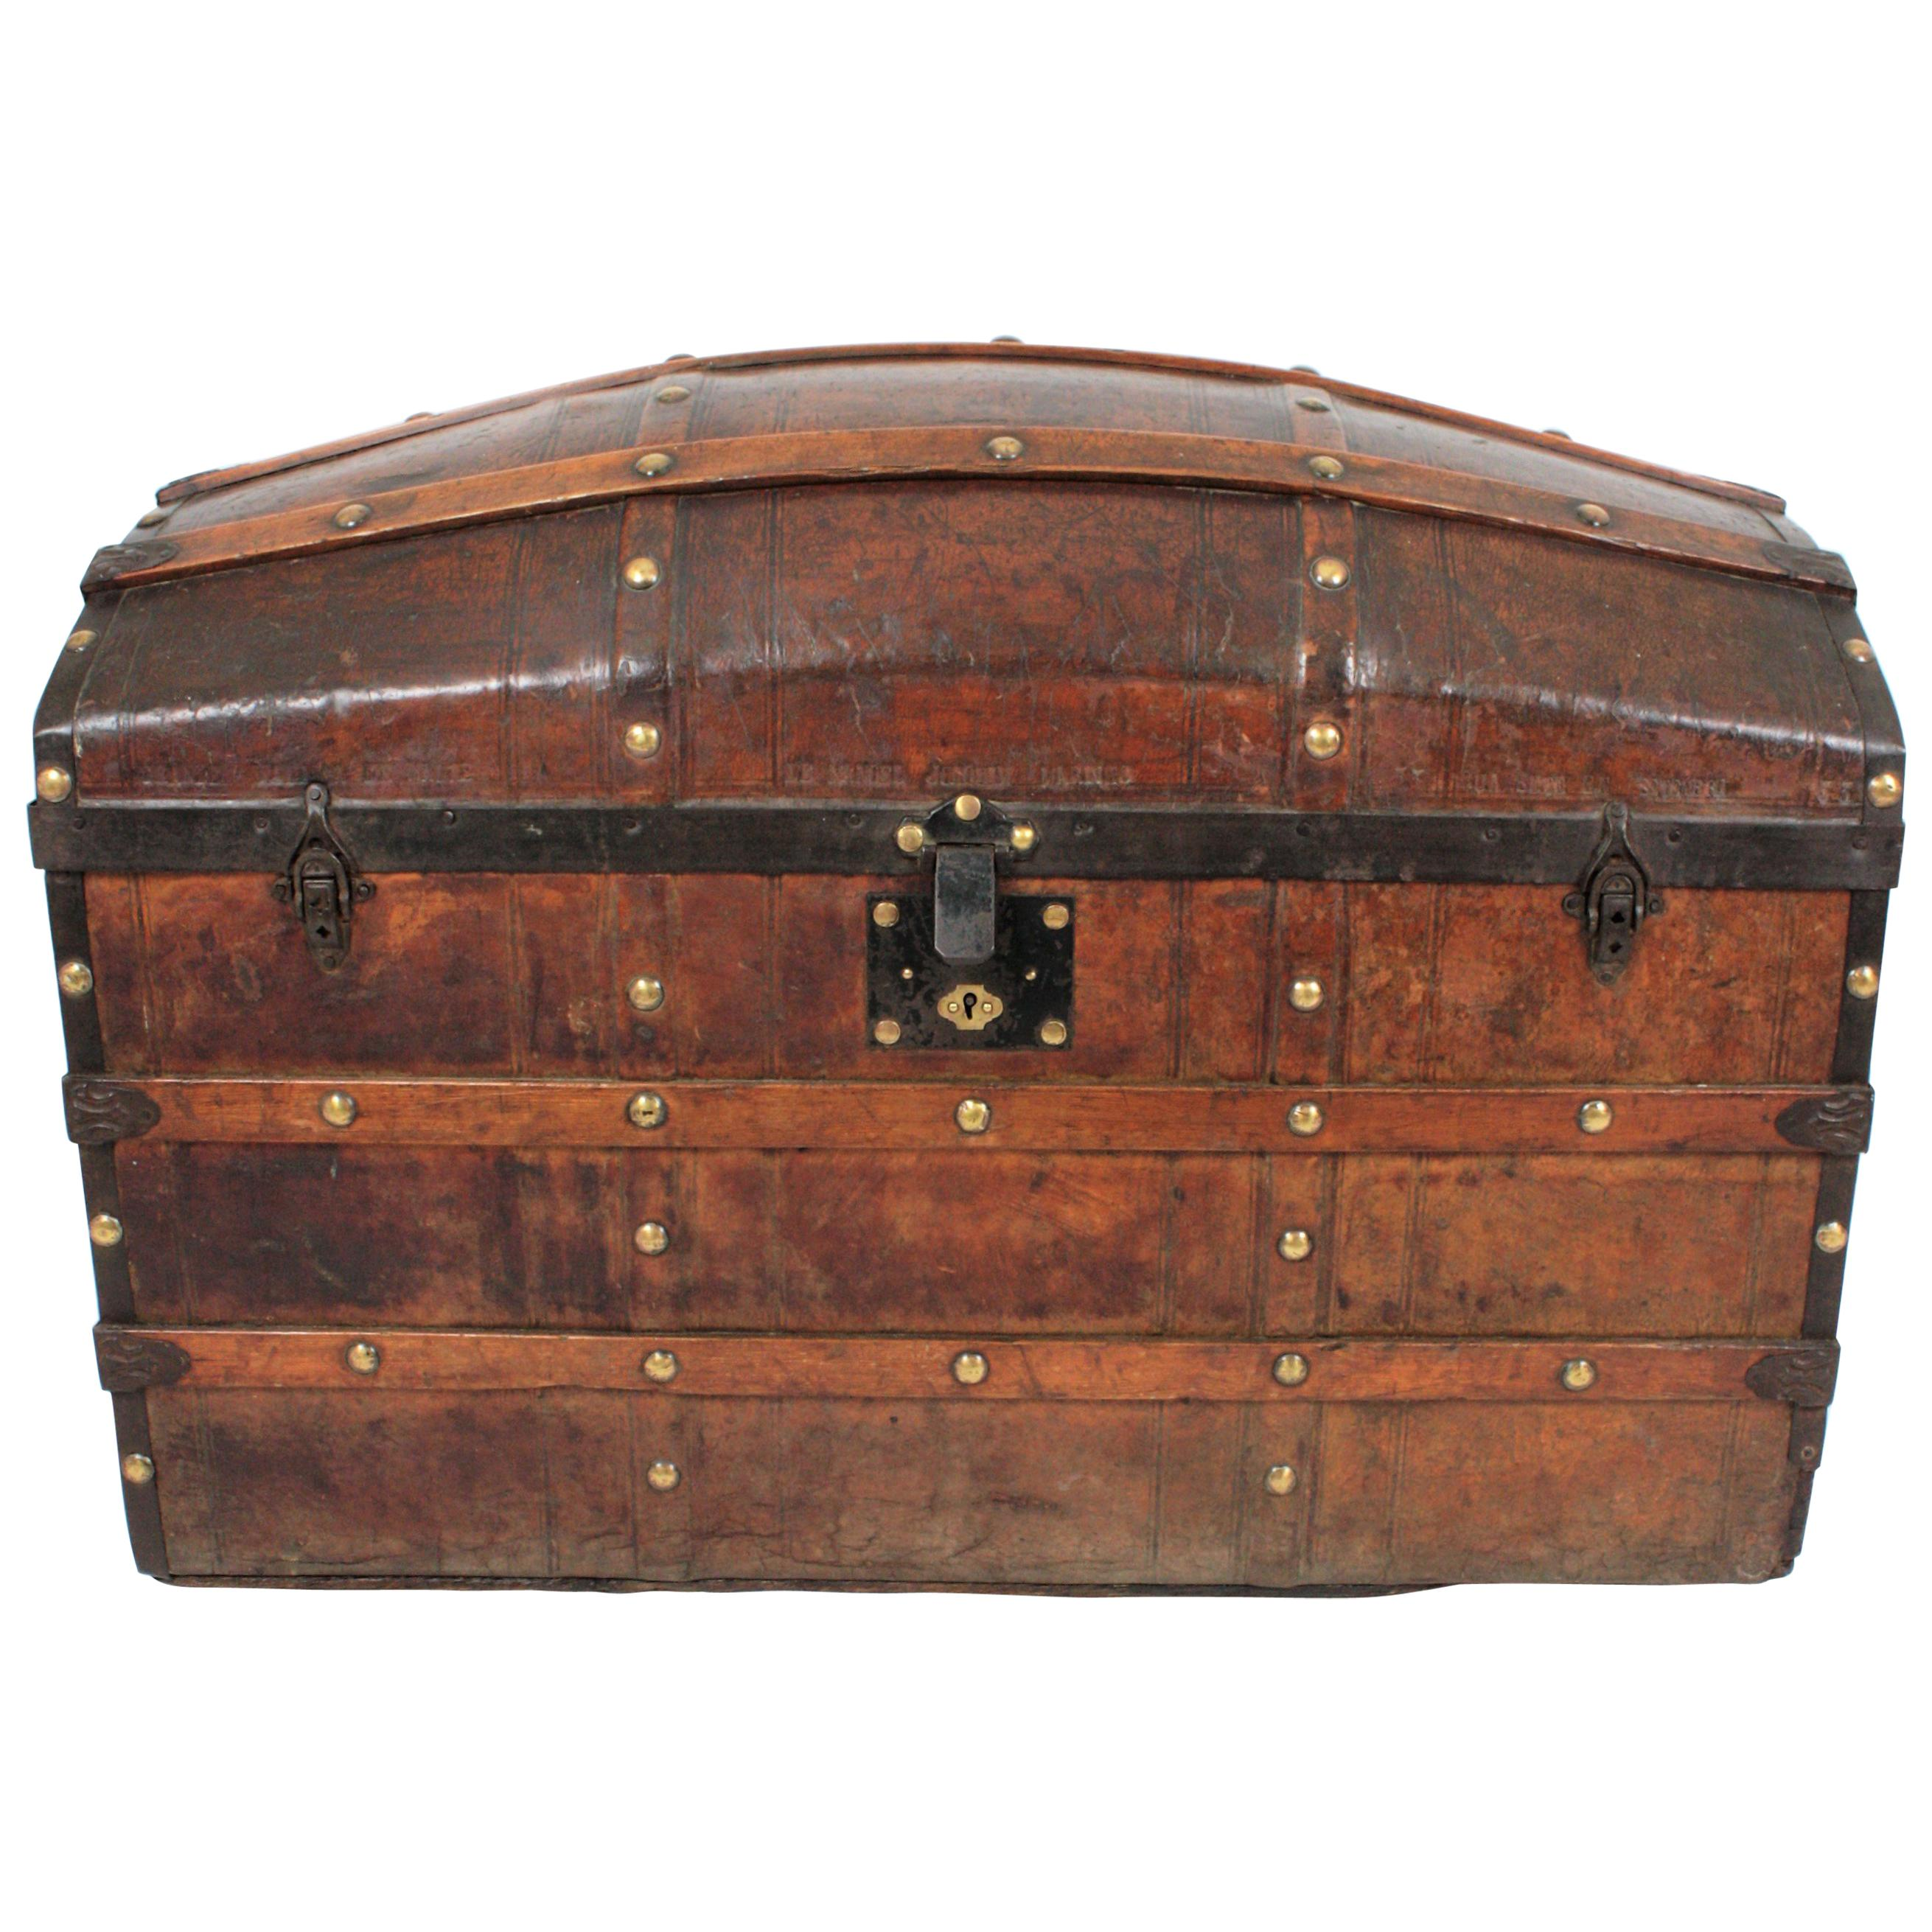 Edwardian (1901-1910) 100% Quality Old Steamer Trunk Boxes/chests